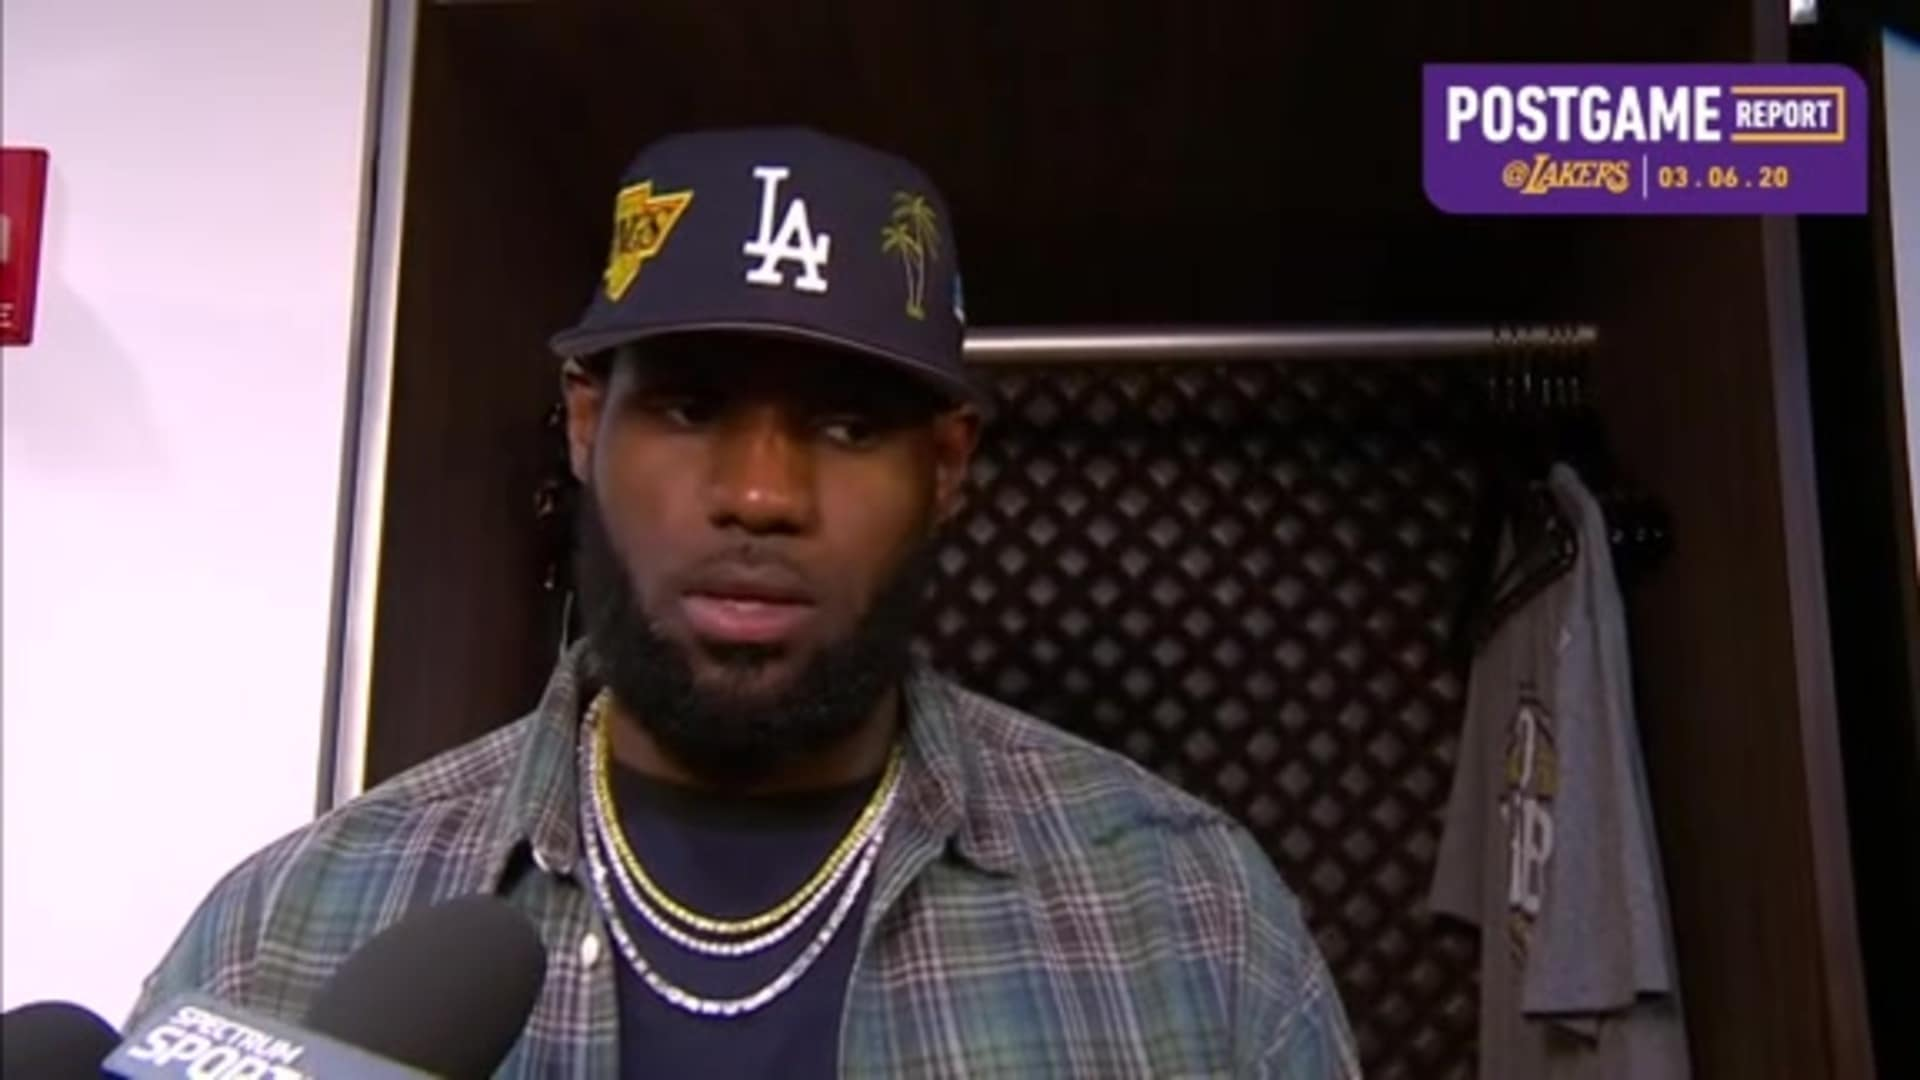 Lakers Postgame: LeBron James (3/6/20)